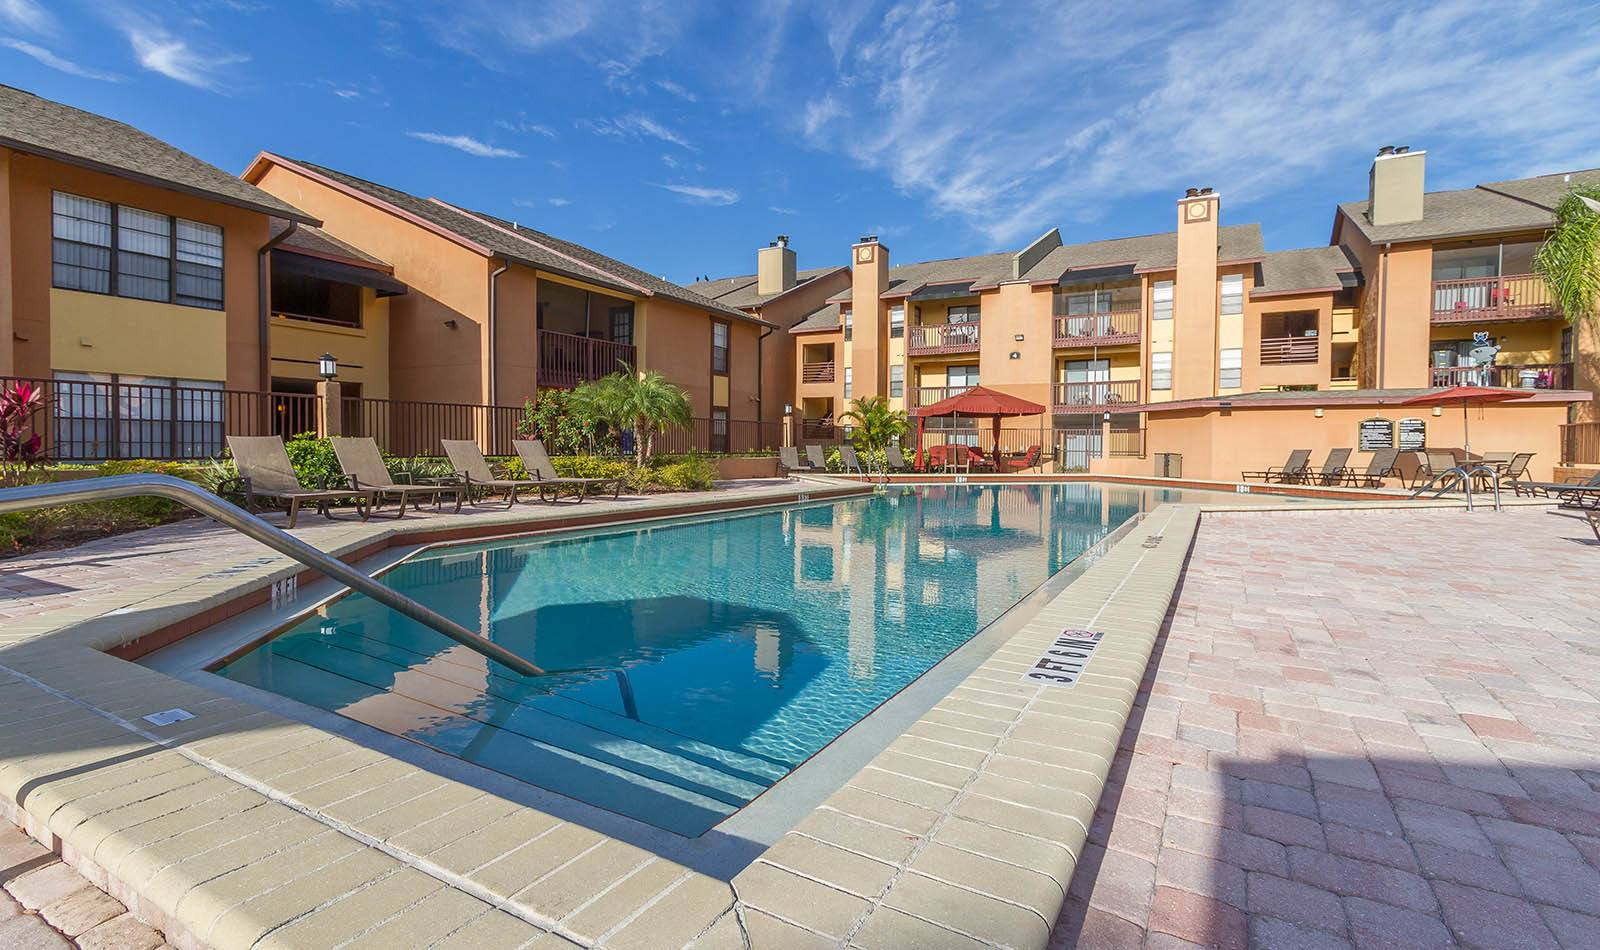 Outdoor pool at Waterstone at Carrollwood Apts in Tampa, FL